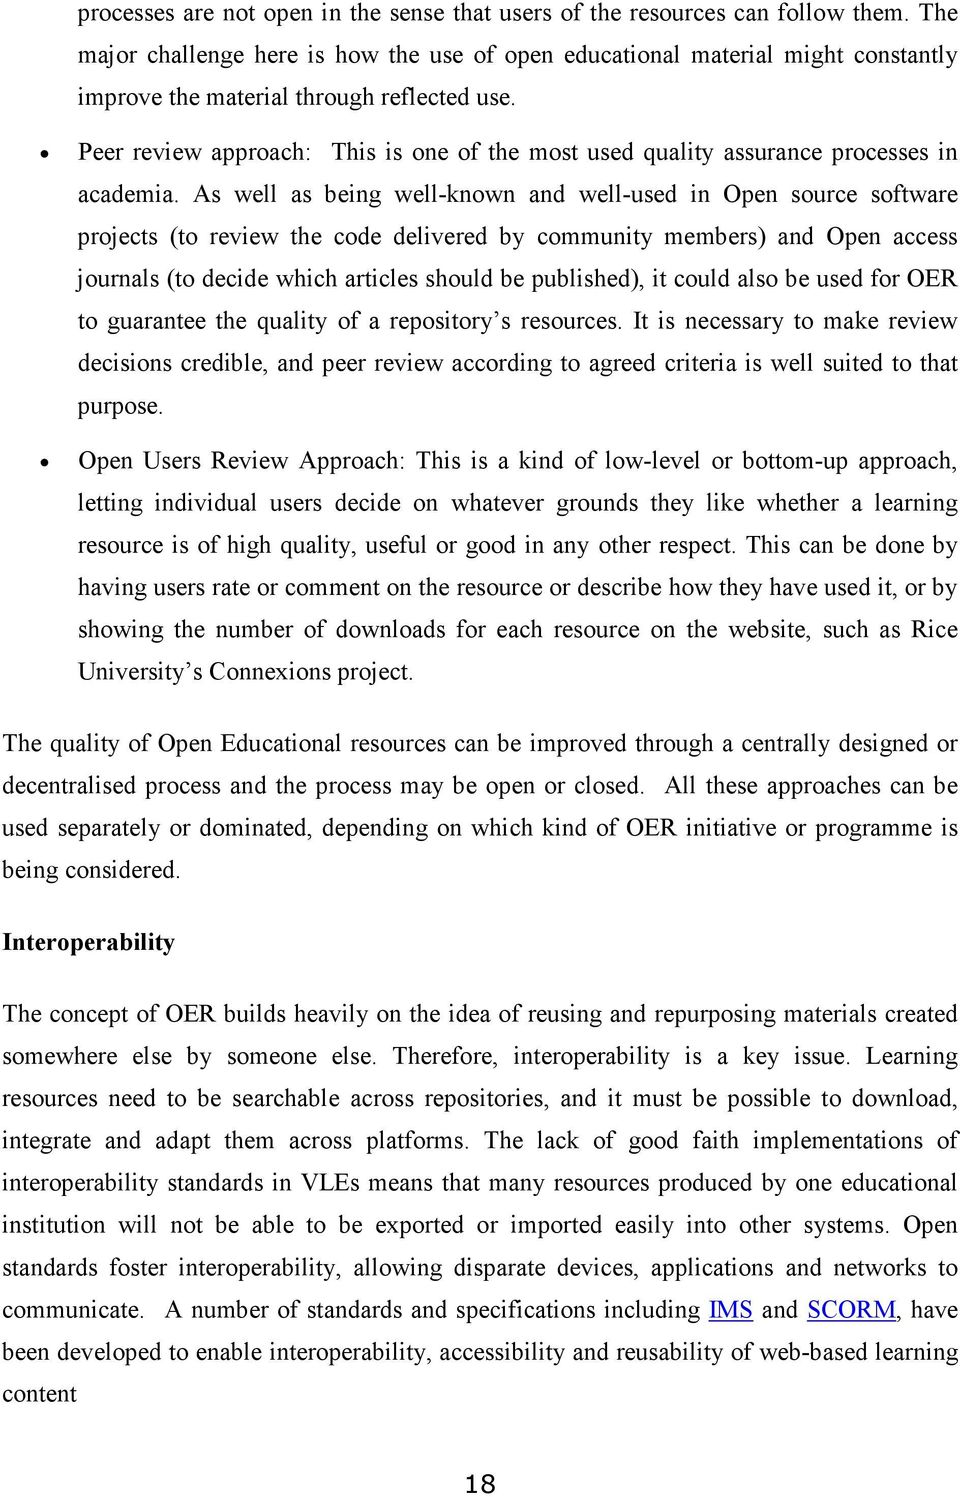 Peer review approach: This is one of the most used quality assurance processes in academia.